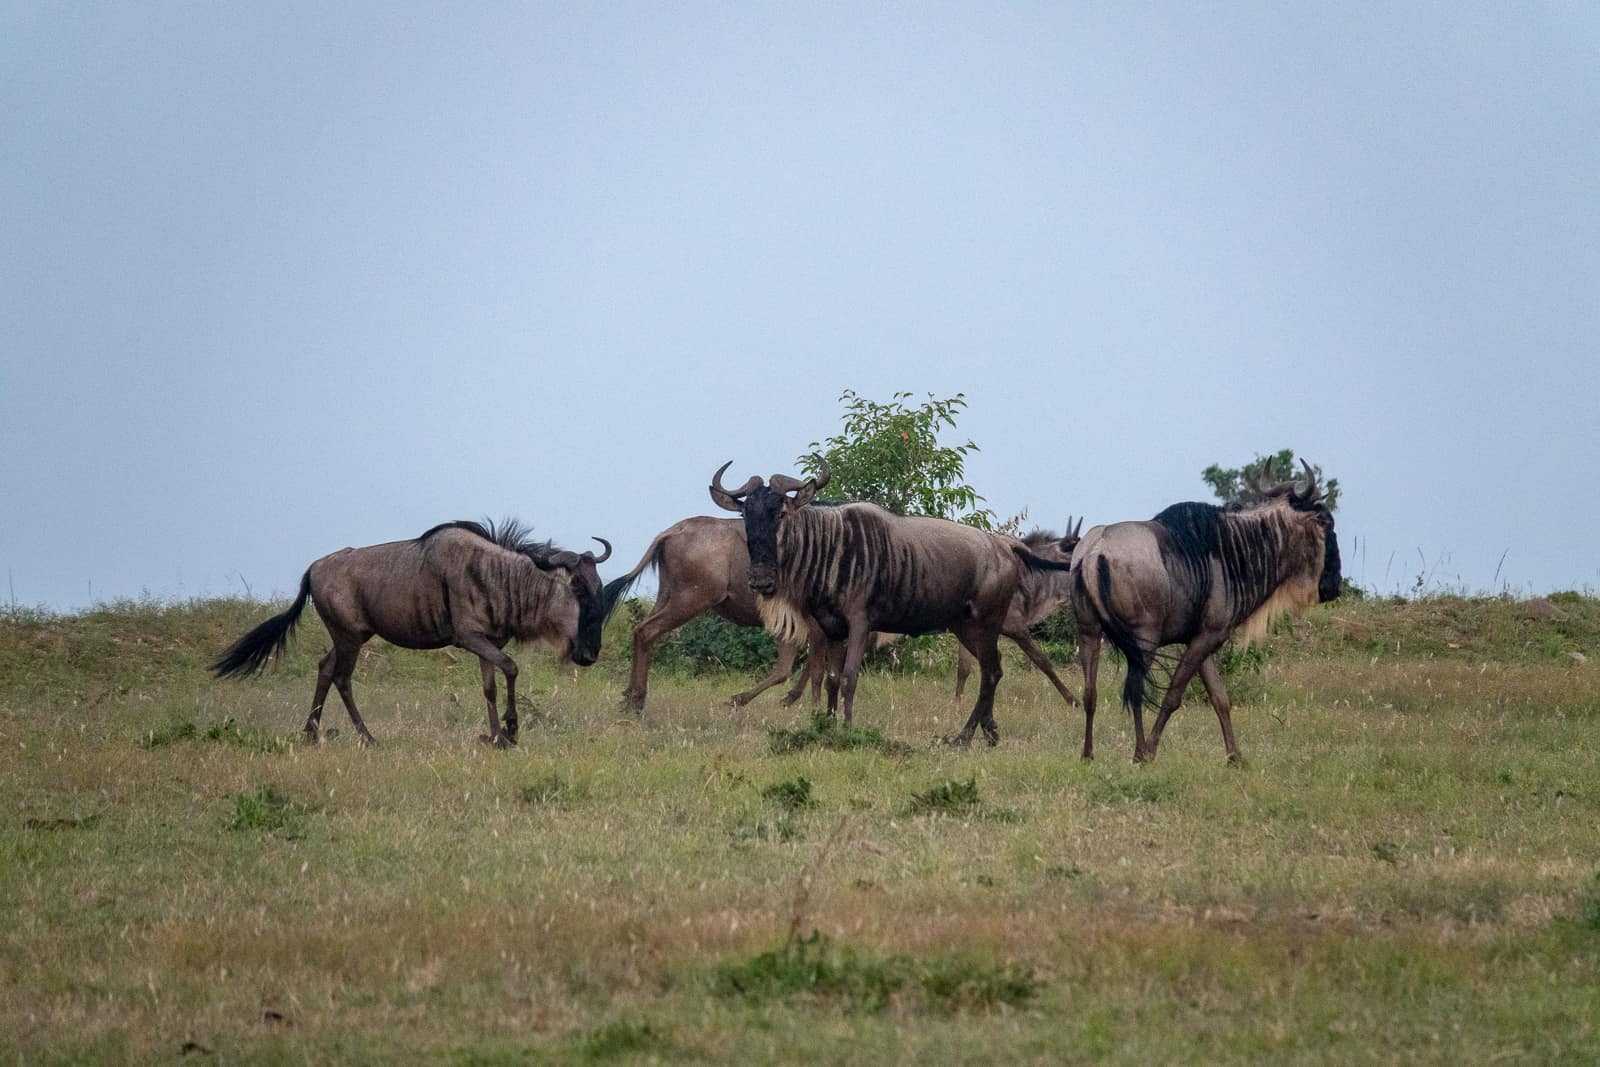 Wildebeest (Gnu) during the Maasai Mara Wildebeest Migration